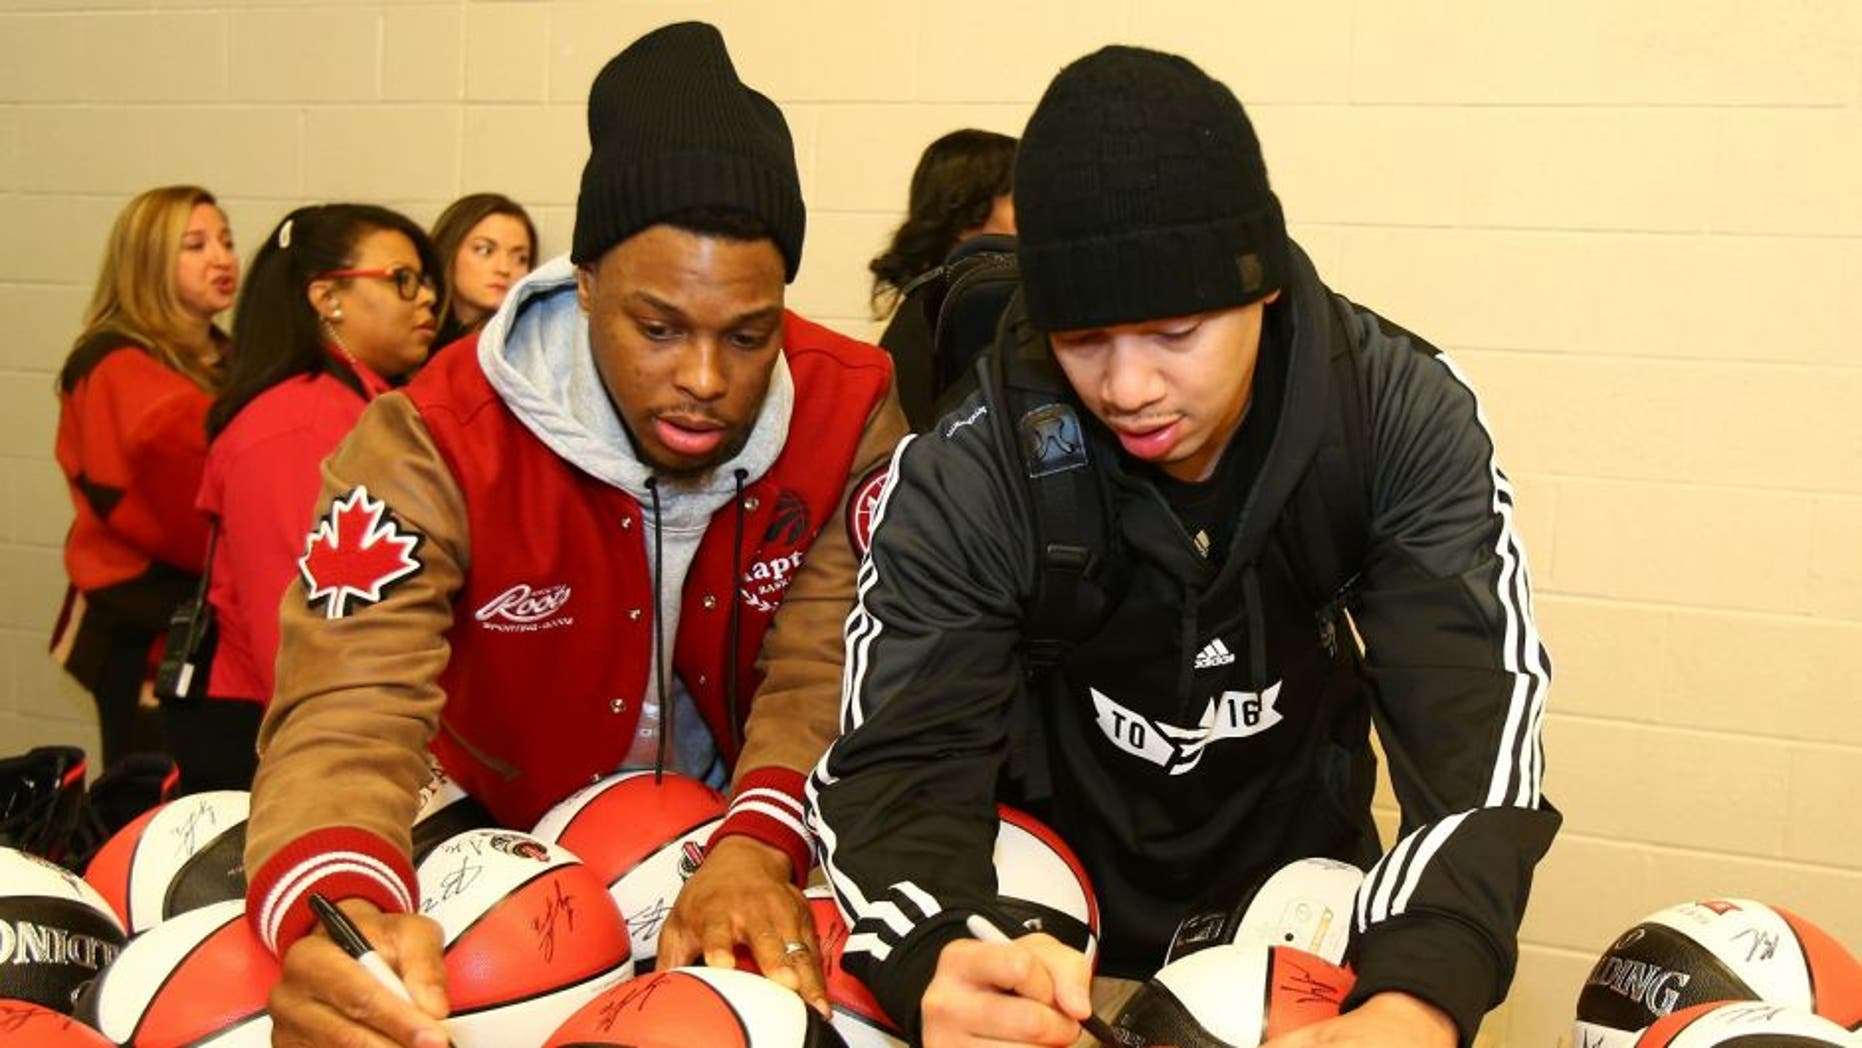 TORONTO, CANADA - FEBRUARY 13: Kyle Lowry #7 and Tyronn Lue of the Eastern Conference All-Stars autographs balls before the NBA All-Star Practice as part of 2016 All-Star Weekend at the Ricoh Coliseum on February 13, 2016 in Toronto, Ontario, Canada. NOTE TO USER: User expressly acknowledges and agrees that, by downloading and/or using this photograph, user is consenting to the terms and conditions of the Getty Images License Agreement. Mandatory Copyright Notice: Copyright 2016 NBAE (Photo by Nathaniel S. Butler/NBAE via Getty Images)